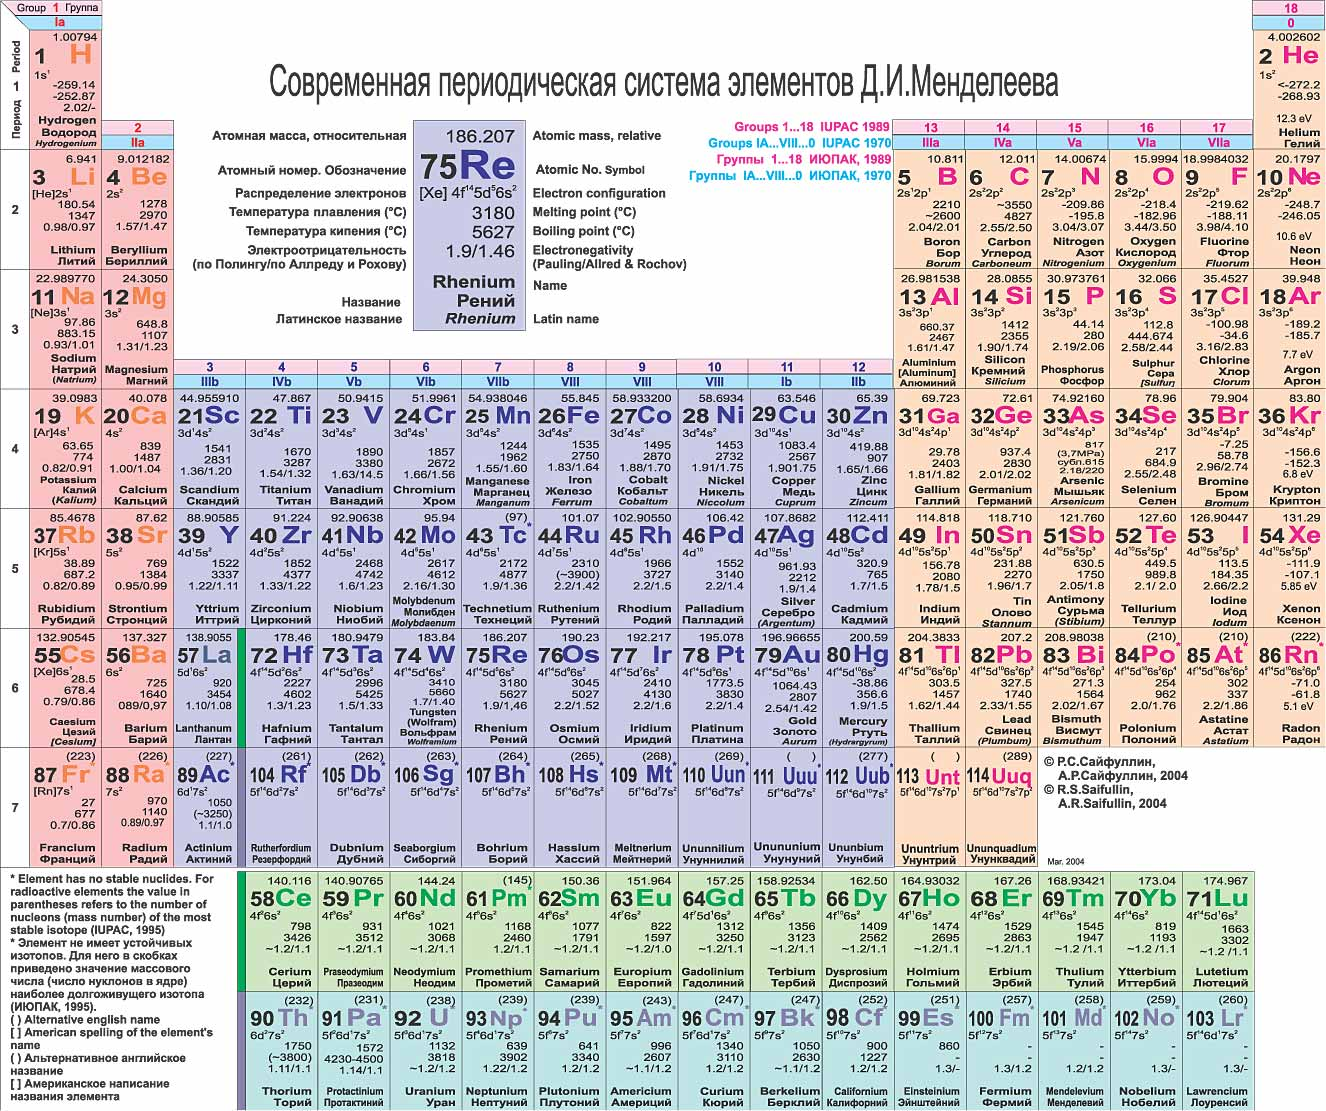 Russian language periodic table of the elements michael canov russian language periodic table of the elements michael canov from czech republic gamestrikefo Image collections